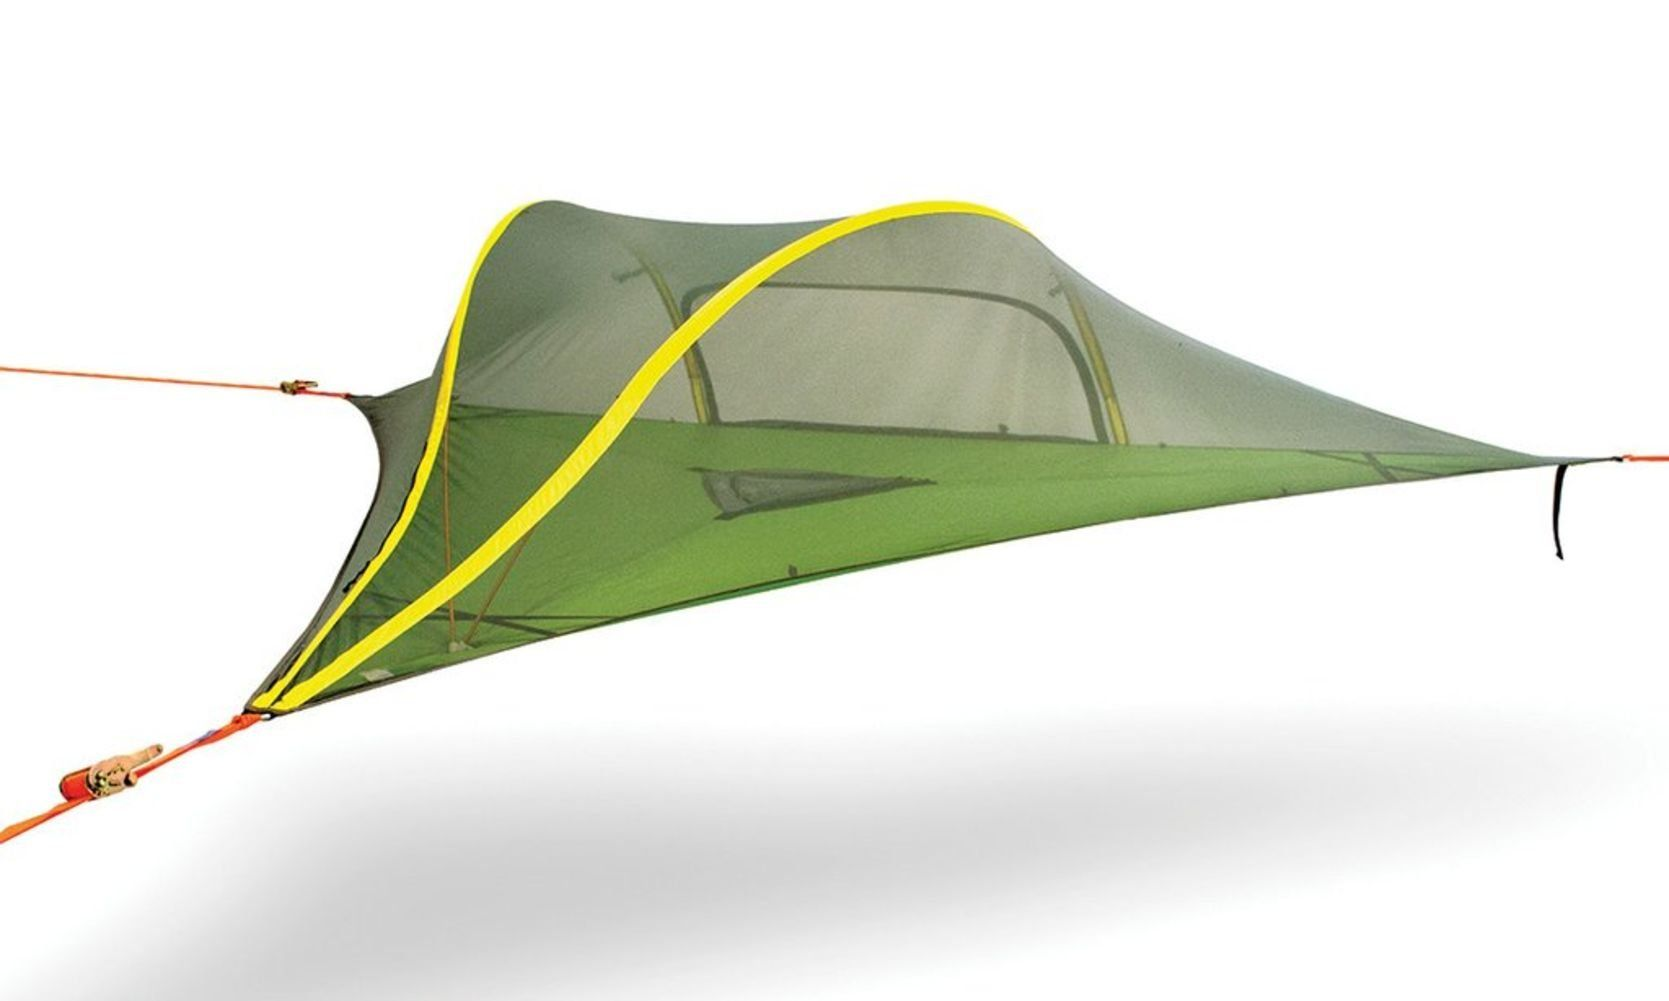 69b1cec6f Tentsile Stingray Suspended Camping Tree House Tent 3 Person Camo ...